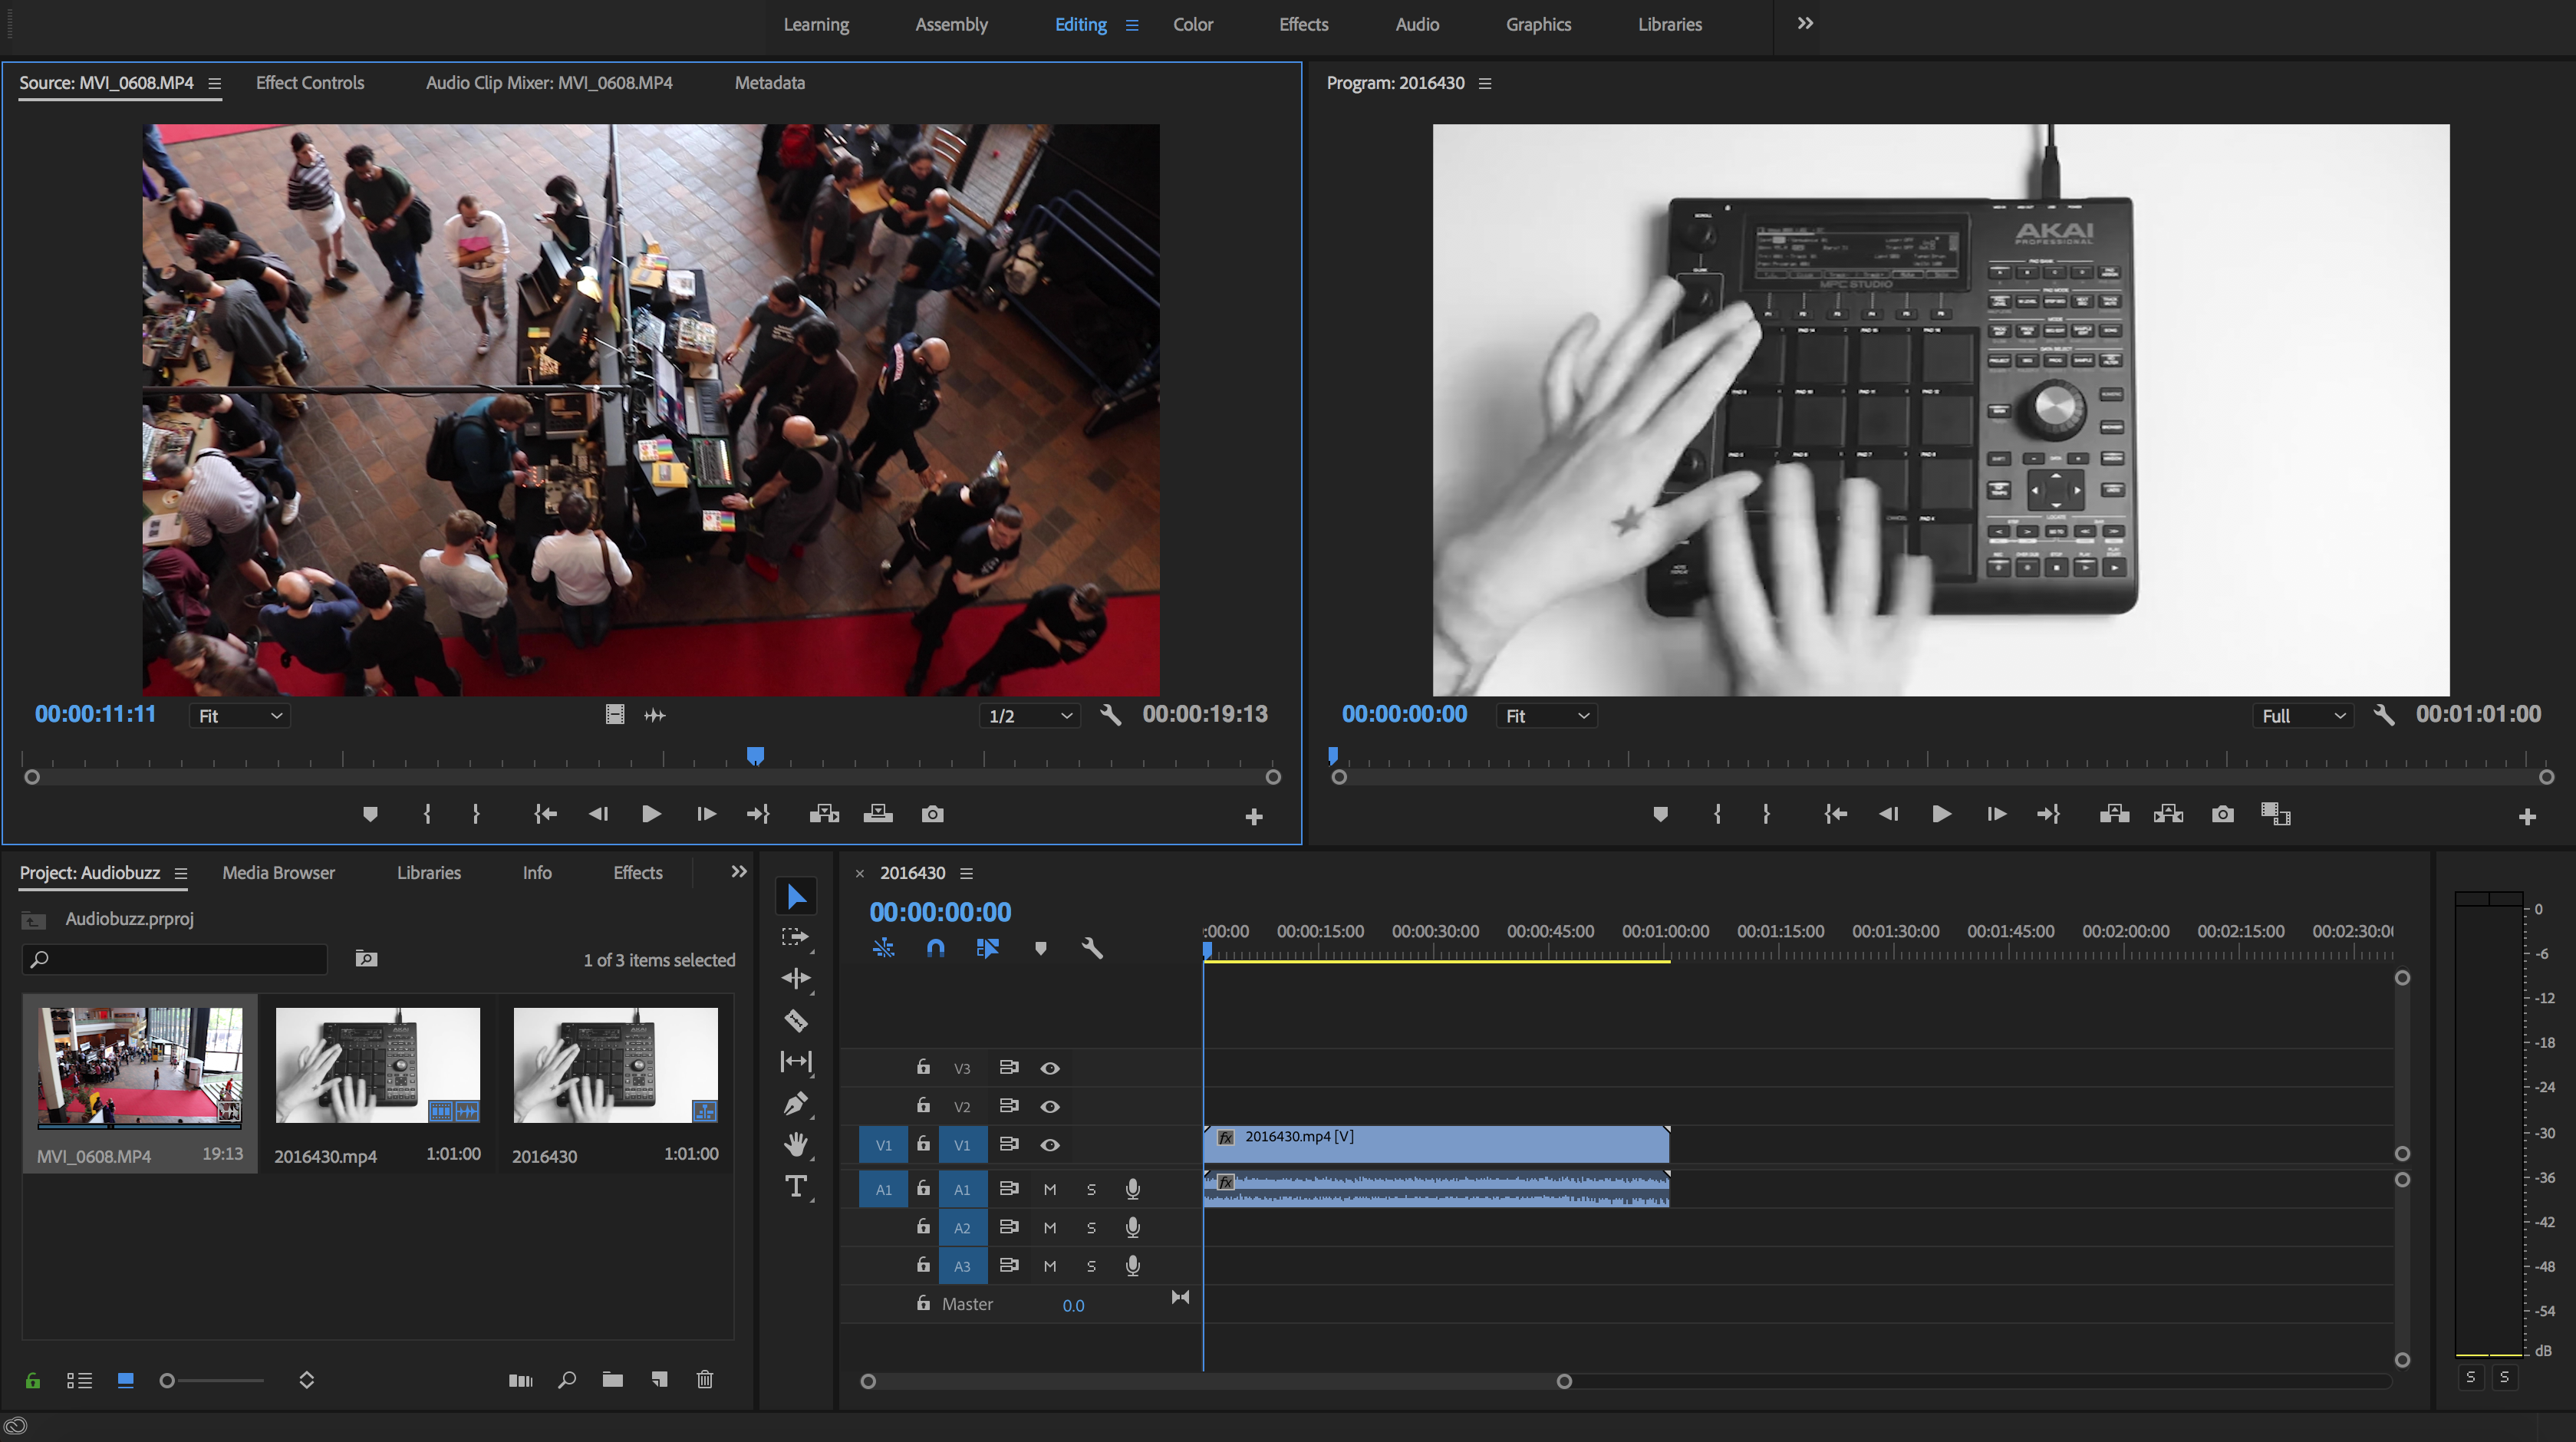 How to use Adobe Premiere Pro - Editing Layout Window